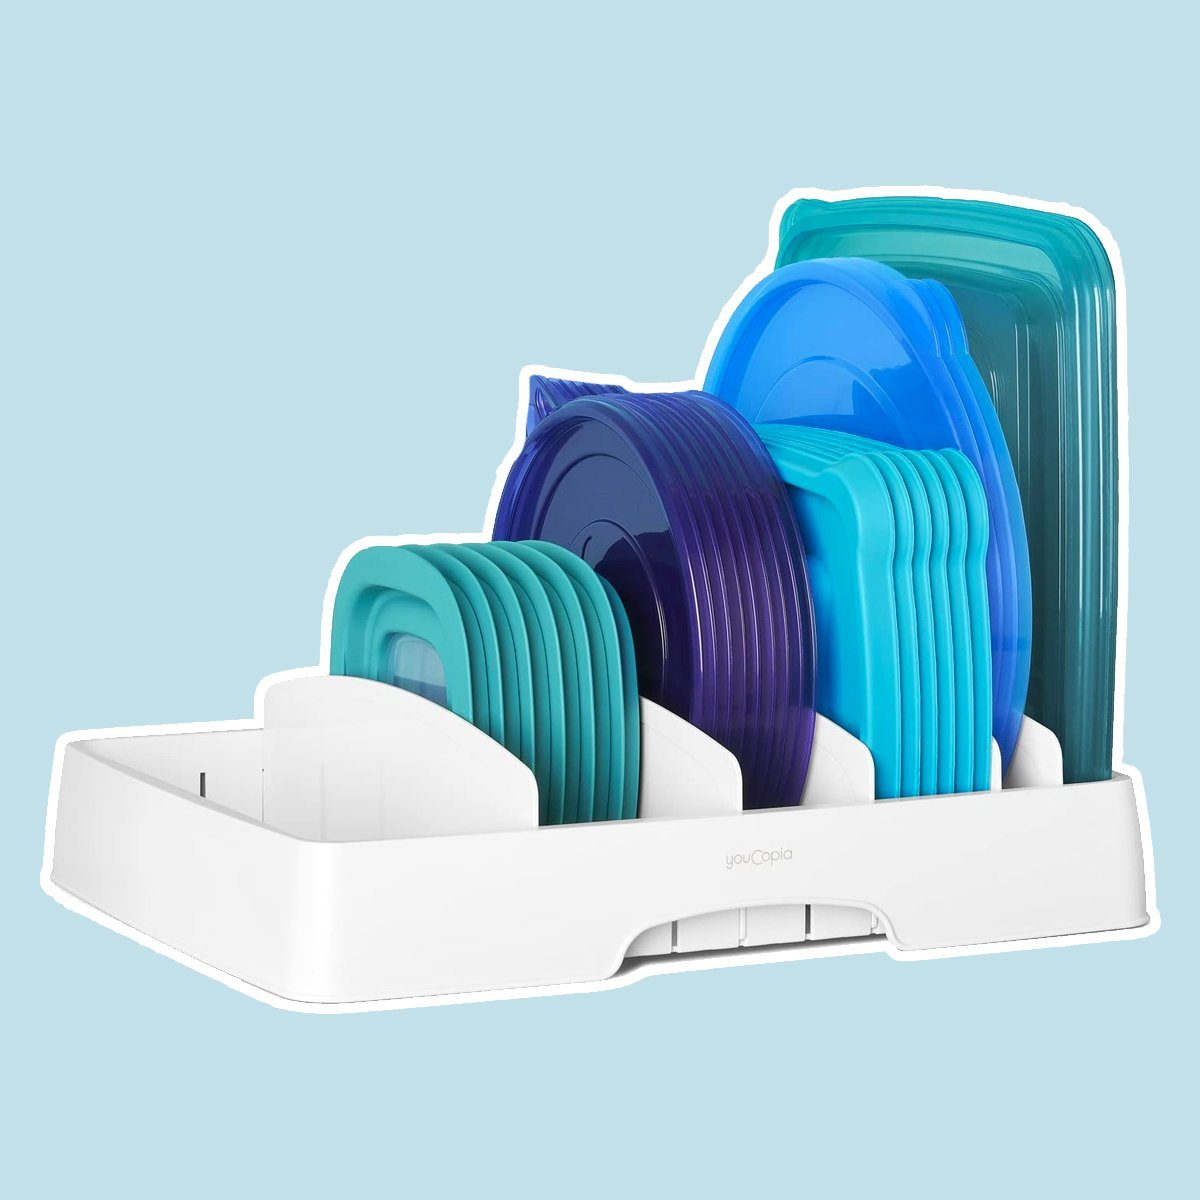 YouCopia 50100 StoraLid Food Container Lid Organizer,